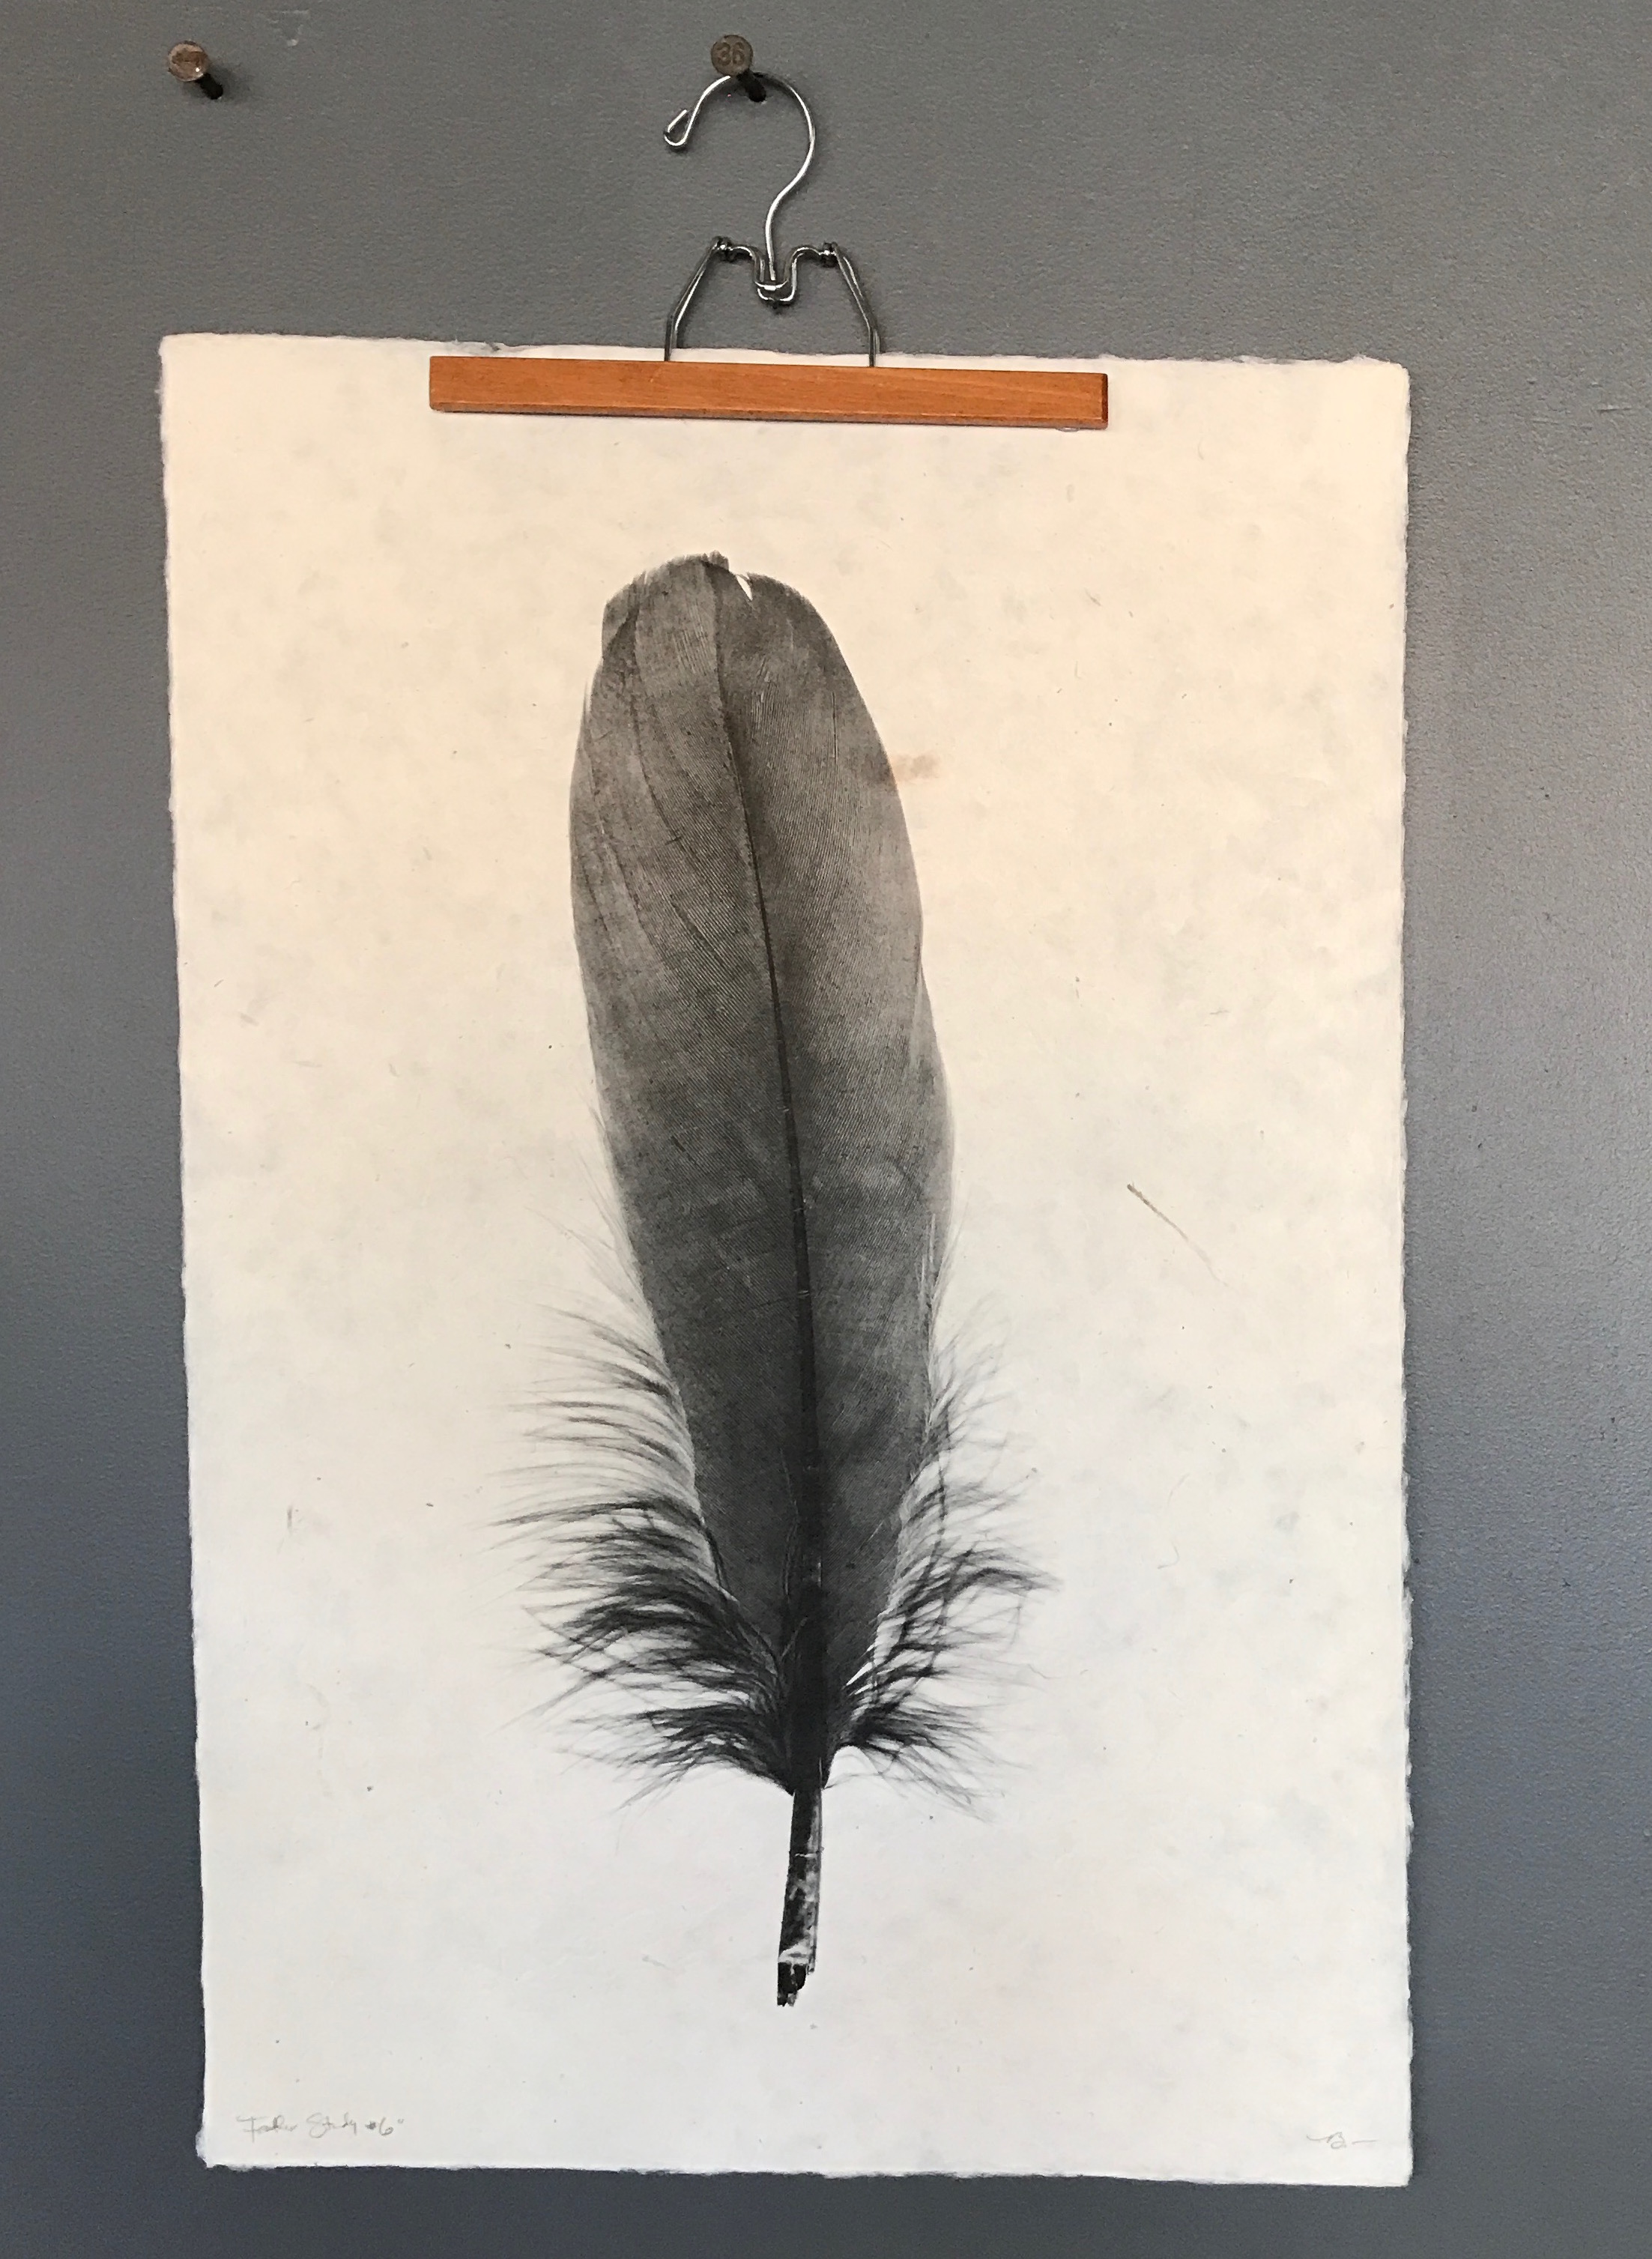 Feather Study #6, photograph on Nepalese paper by Dennis and Roy Borloga.